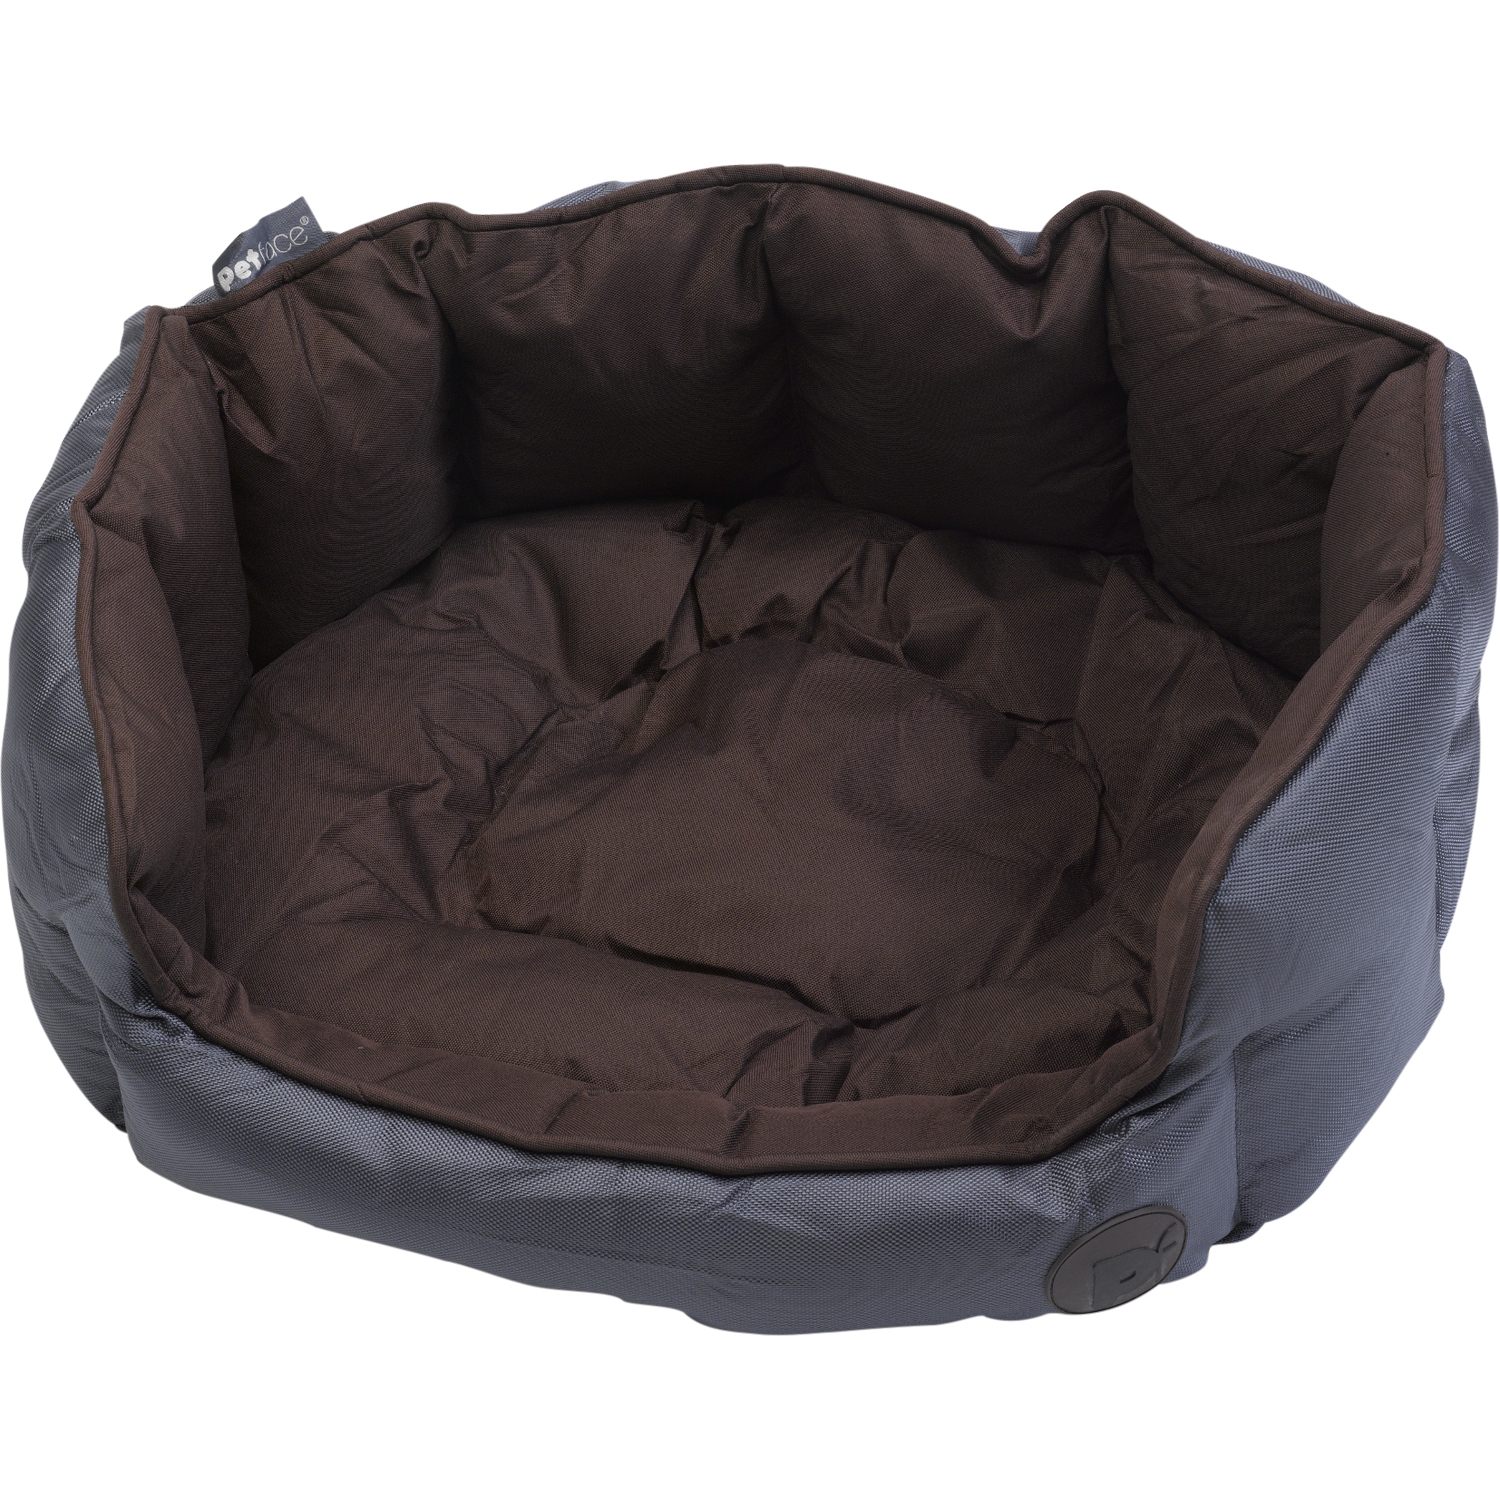 colors puppy beds free house pet bed warm cushion washable dog soft